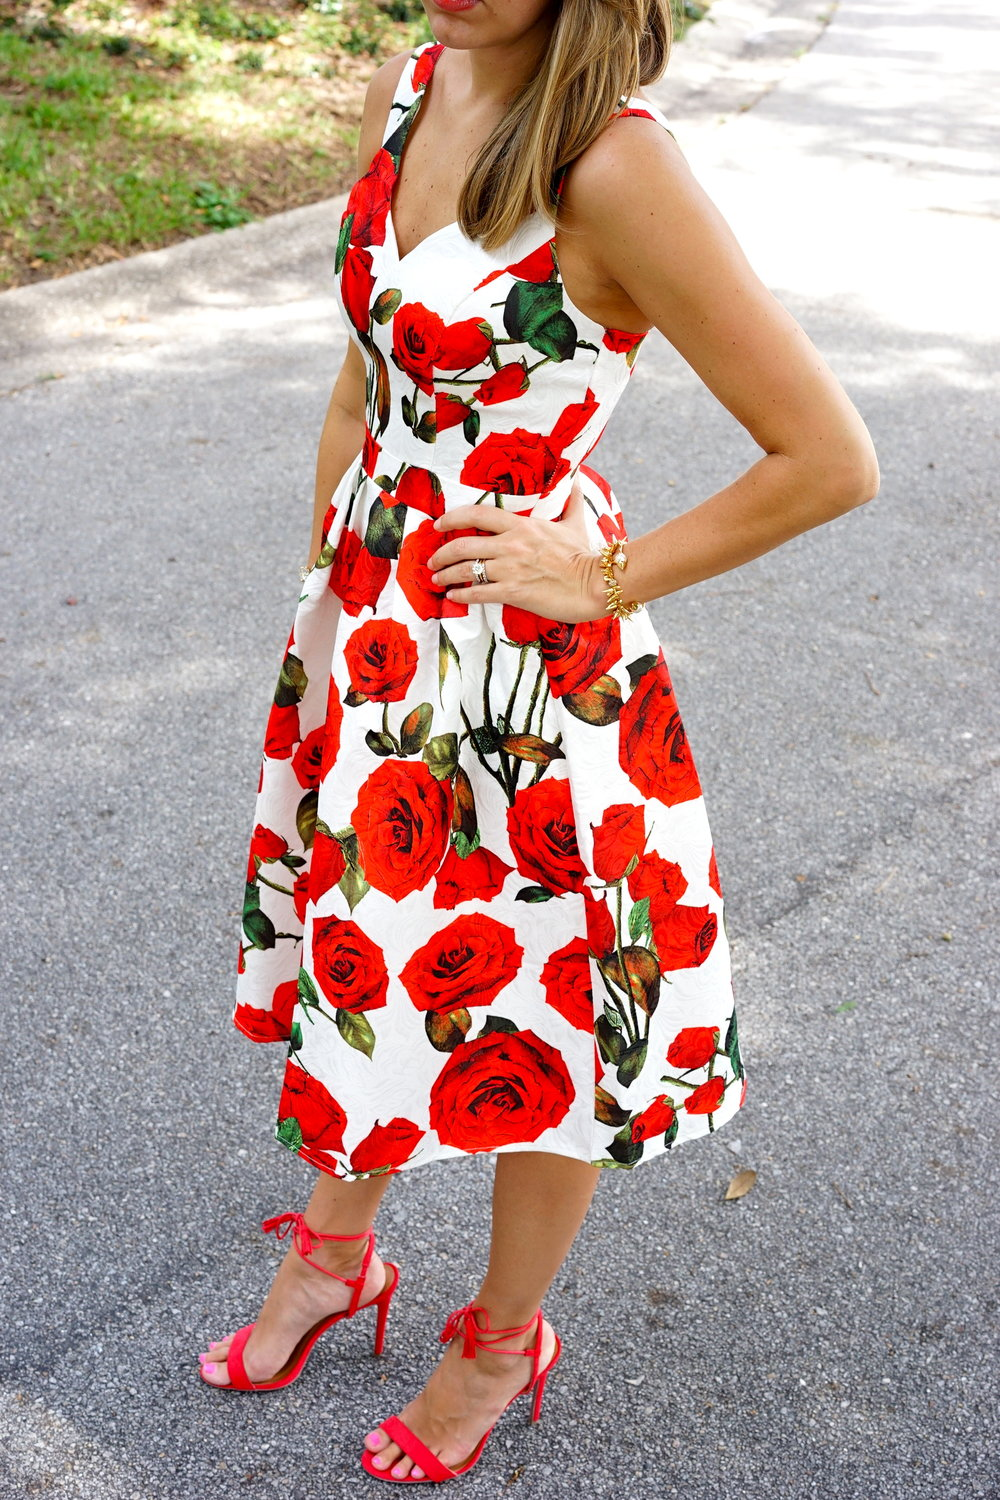 Red rose dress, red lace up heels